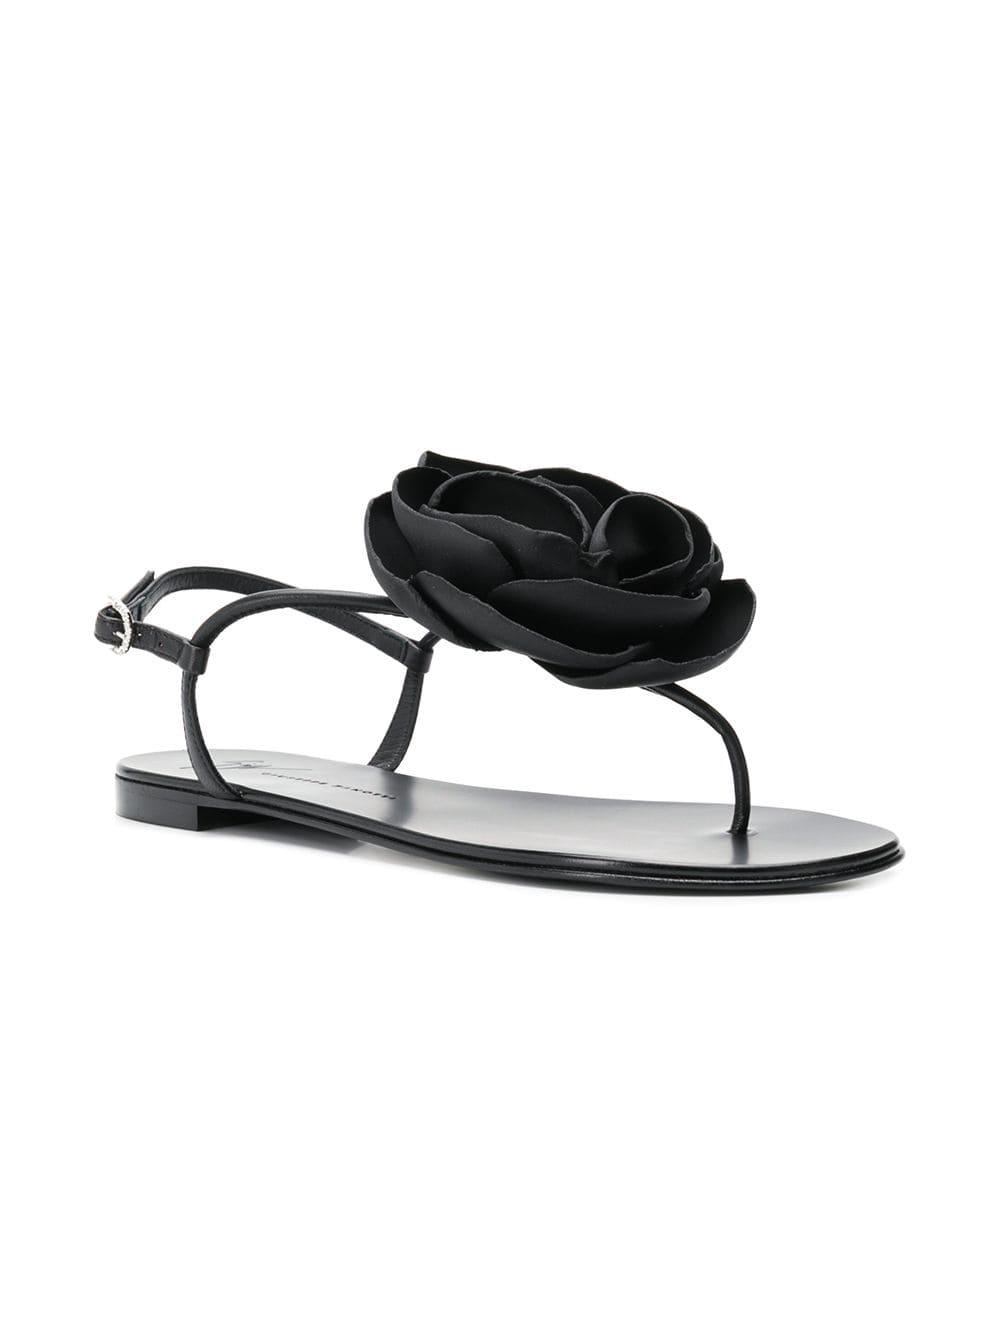 9ceaf8939523 Lyst - Giuseppe Zanotti Flower Flat Sandals in Black - Save 33%